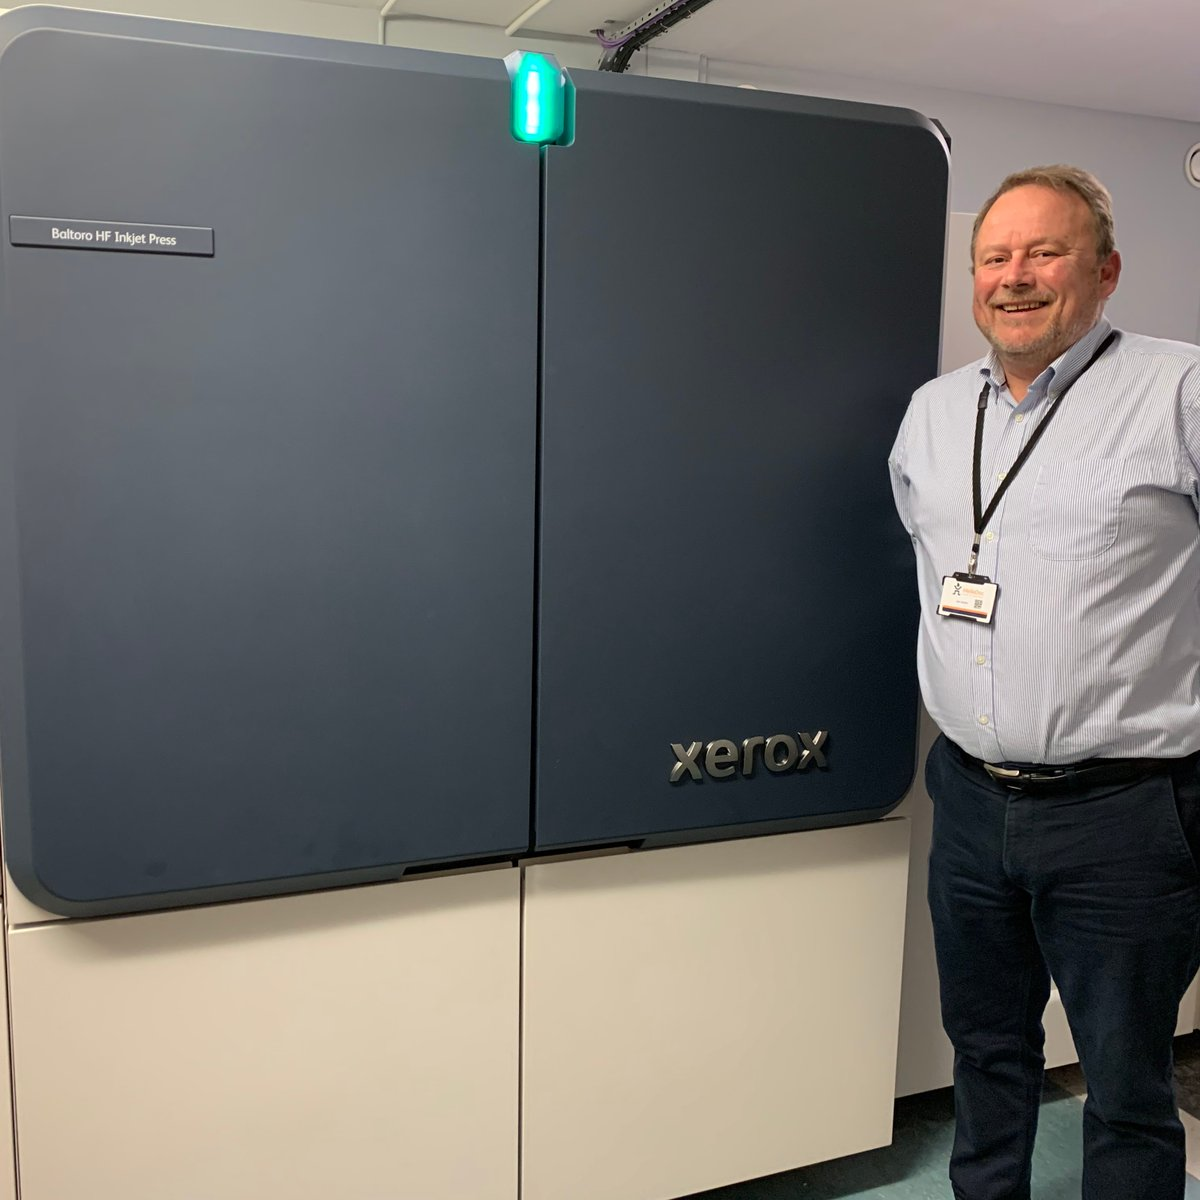 We were the first #mailinghouse in the UK to install the @Xerox #Baltoro meaning your #HybridMail service can print your mail faster than before!  Learn more: https://t.co/H8RLAYNpfq https://t.co/OXiA04ddrL